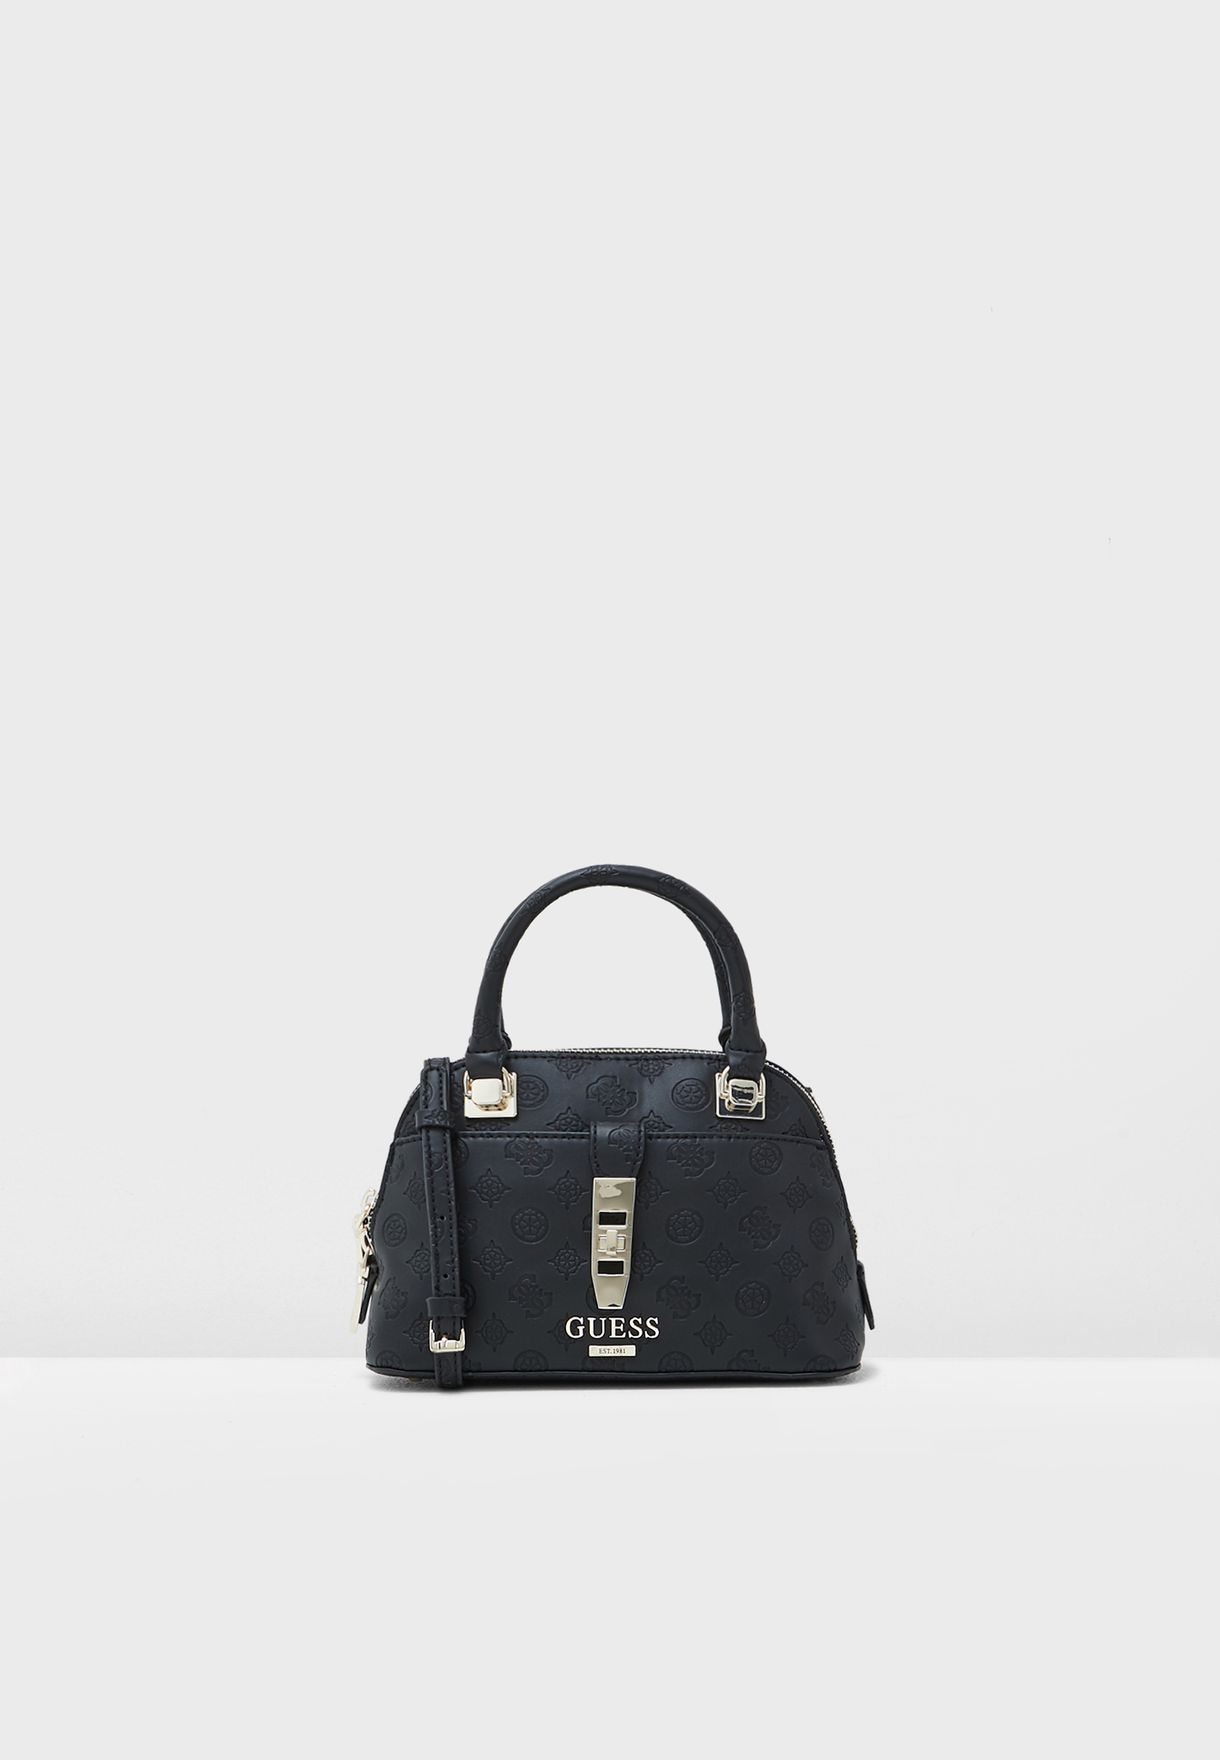 cbc28824c96 Shop Guess black Peony Classic Satchel SG739805 for Women in UAE ...